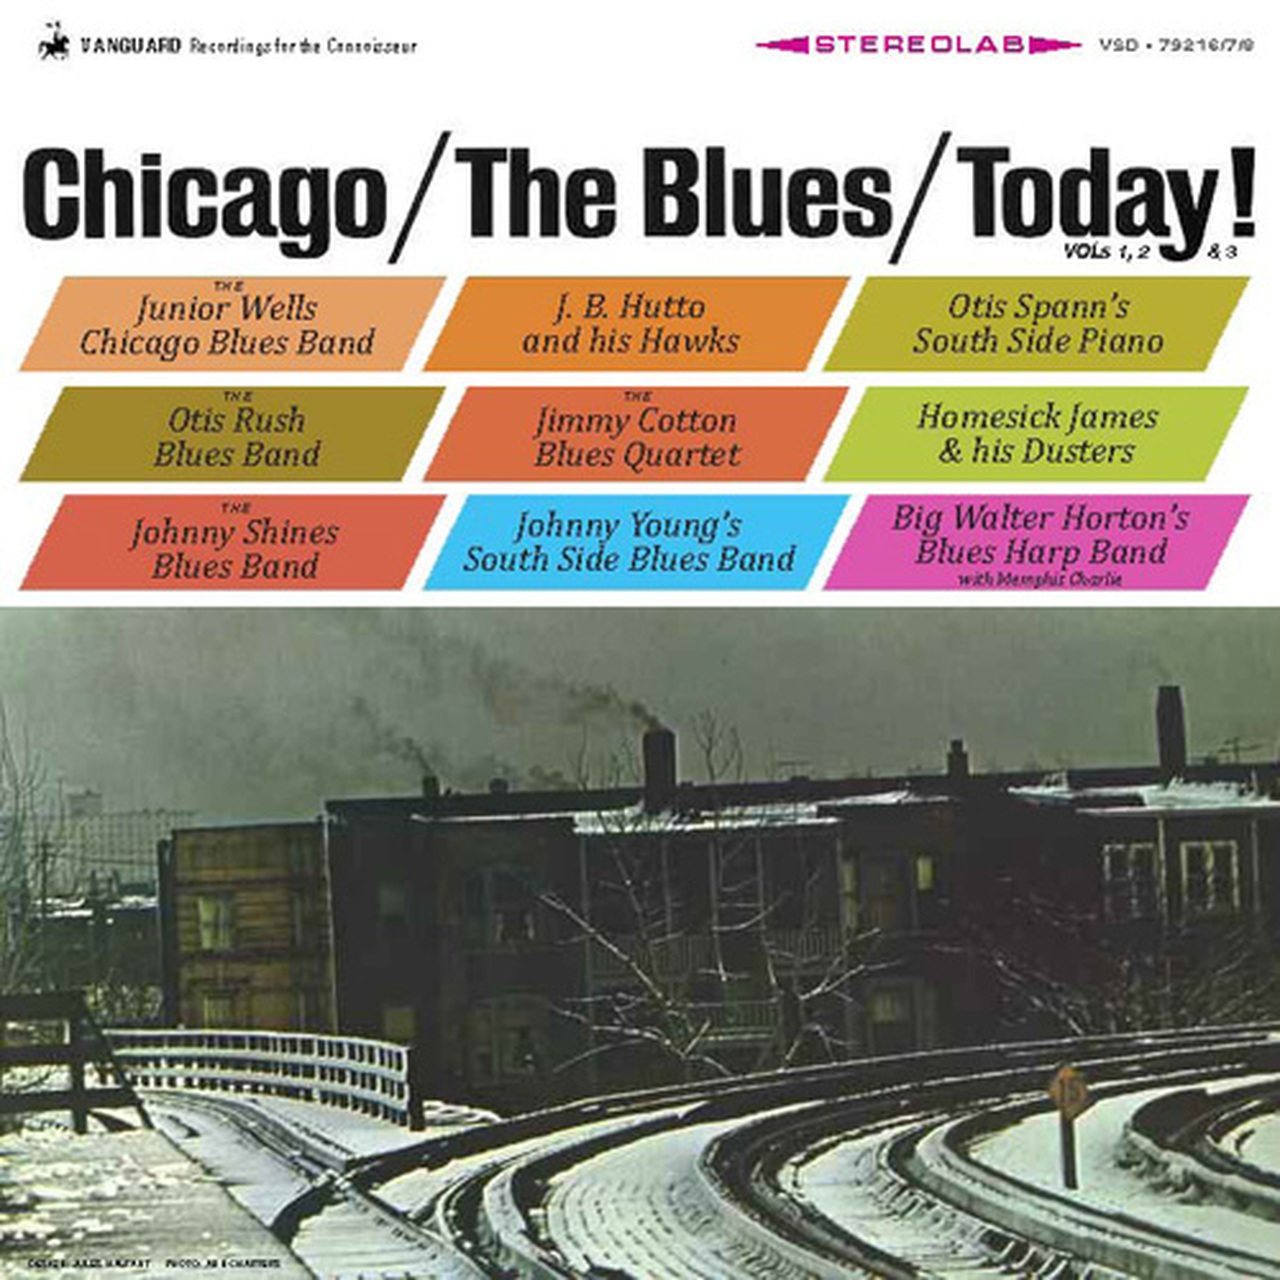 Chicago/The Blues/Today! Vol 1,2 & 3